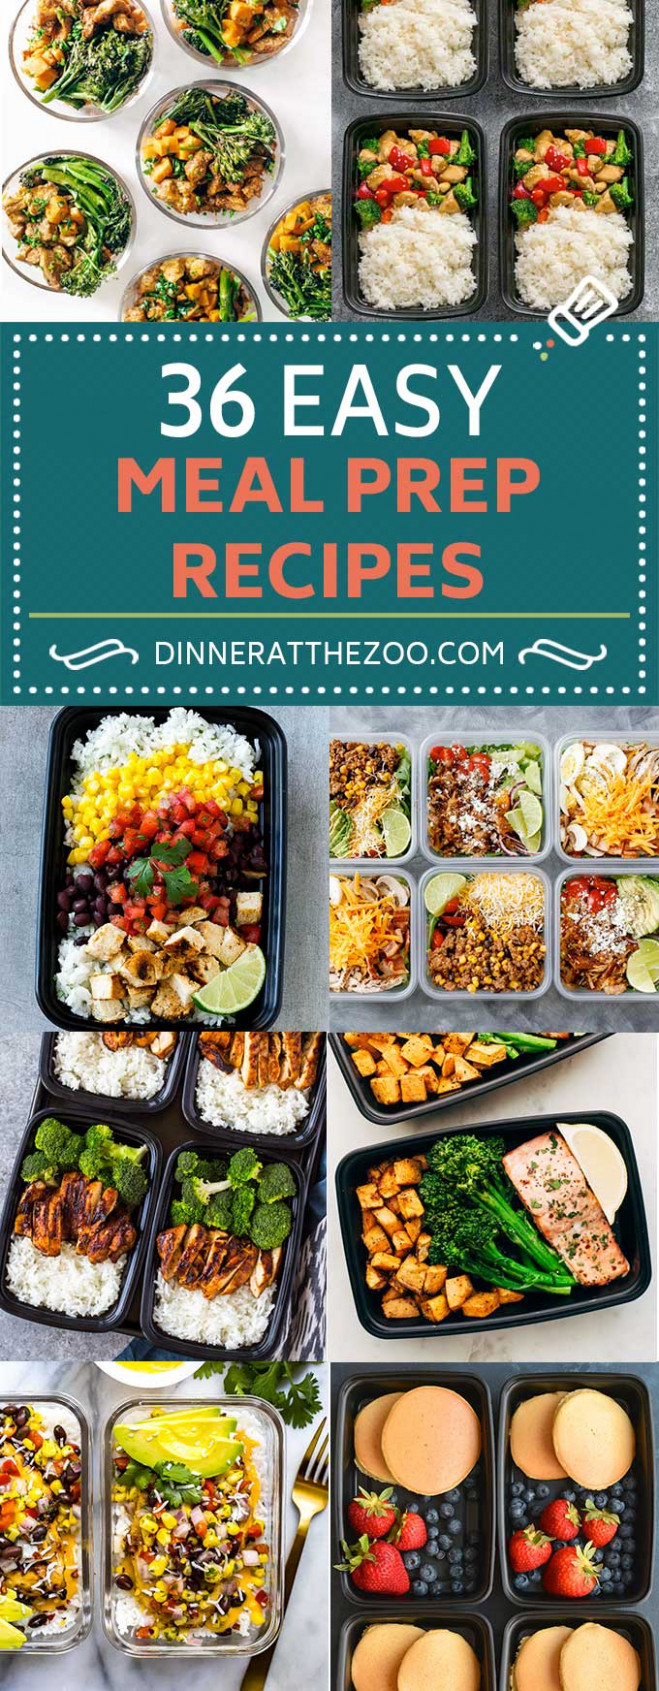 15 Easy Meal Prep Recipes - Dinner at the Zoo - dinner recipes meal prep